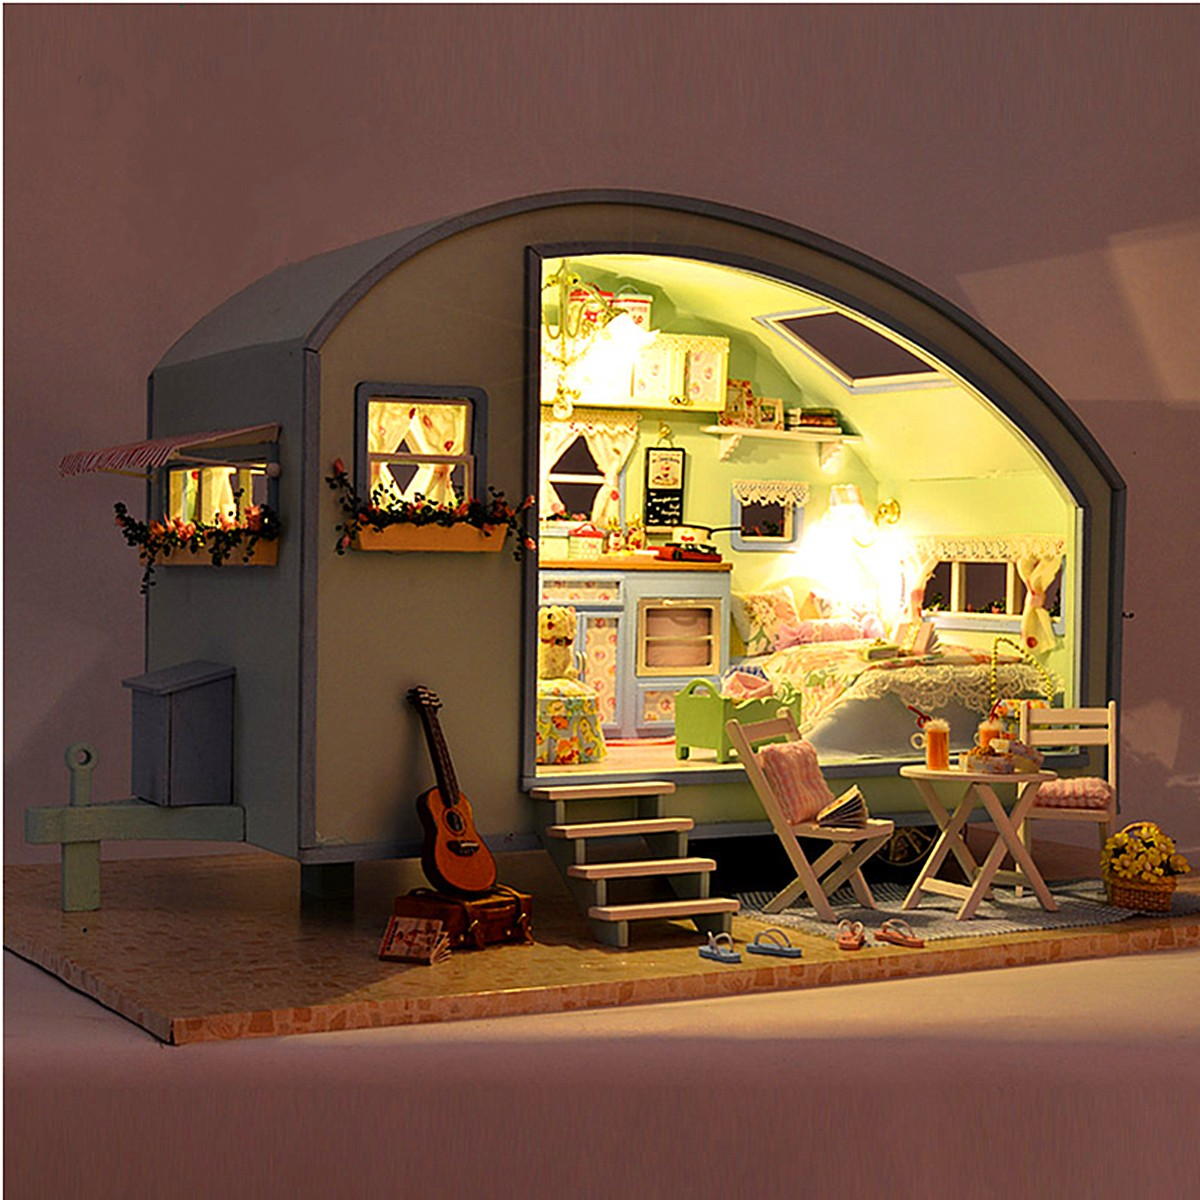 cuteroom diy wooden dollhouse miniature kit doll house led. Black Bedroom Furniture Sets. Home Design Ideas